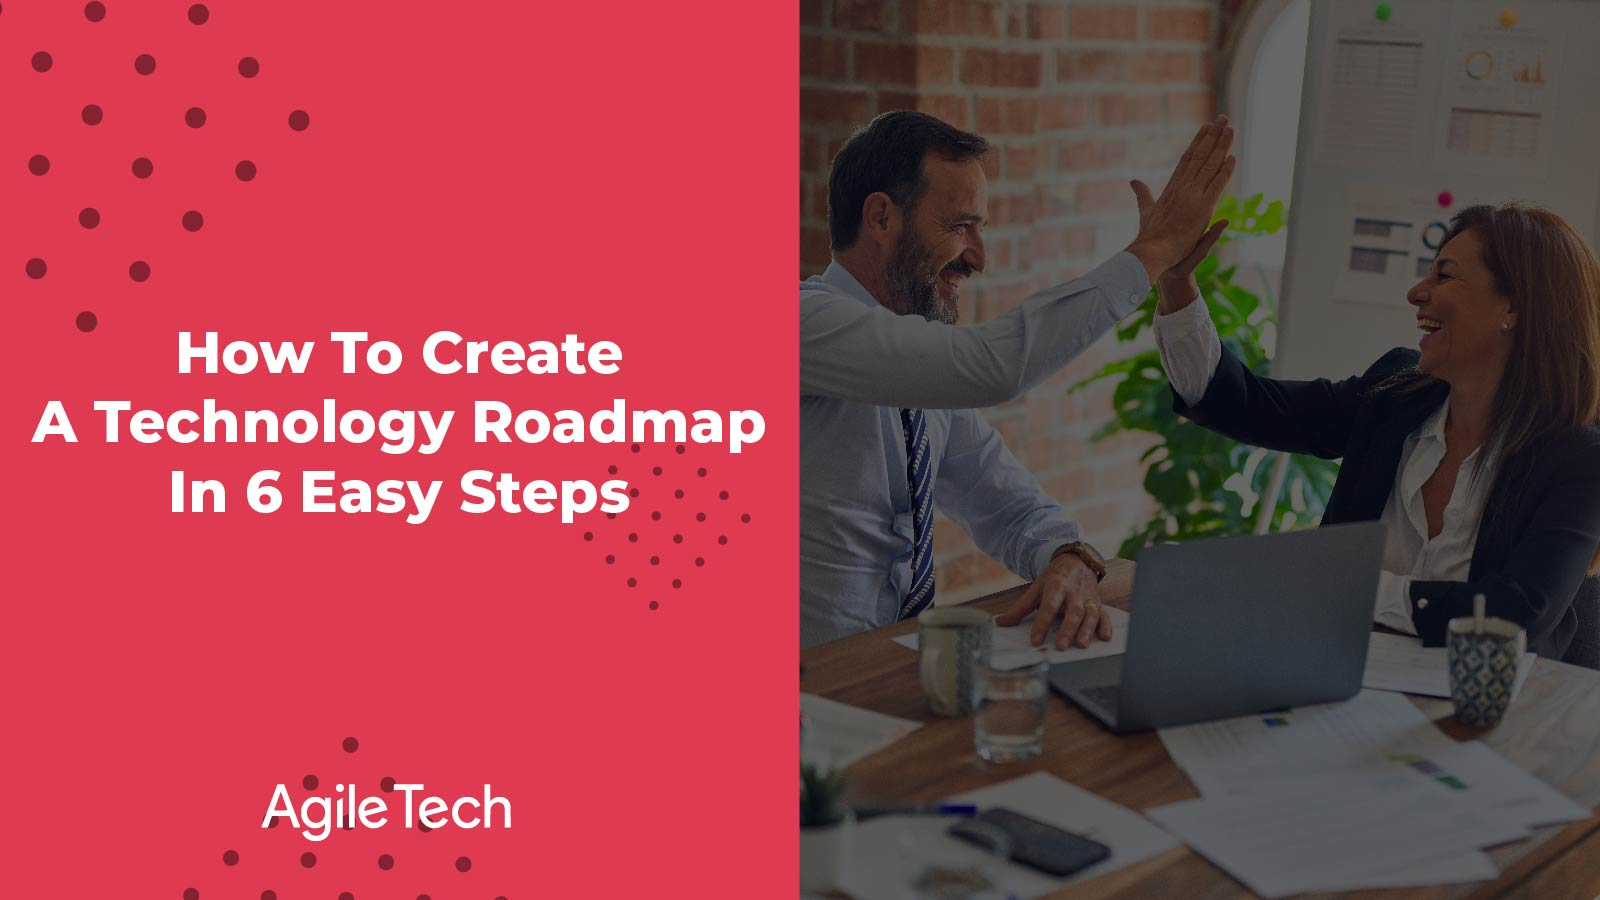 6 easy steps to create a technology roadmap for software development team